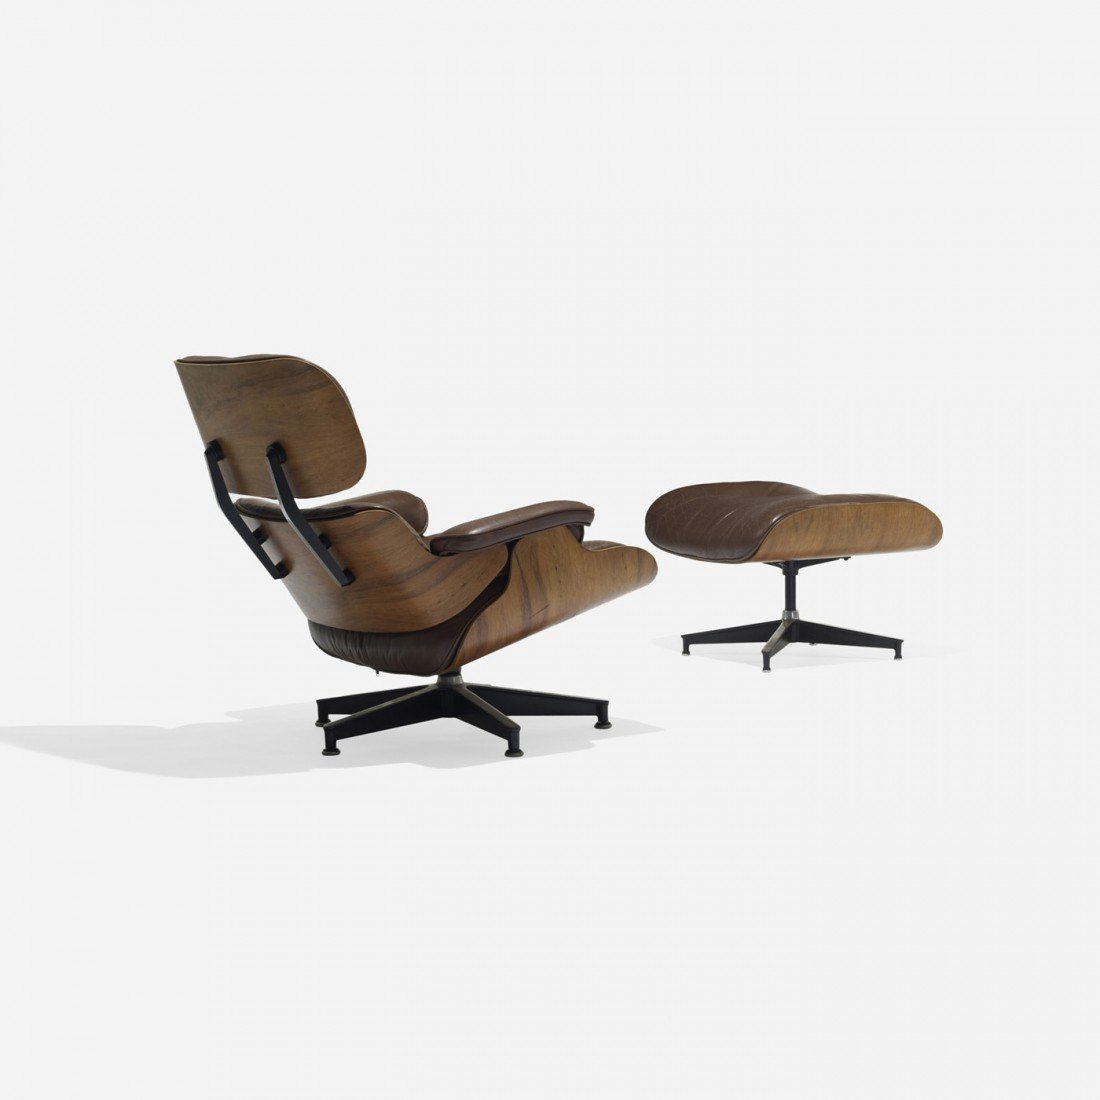 121: Eames 670 lounge chair and 671 ottoman